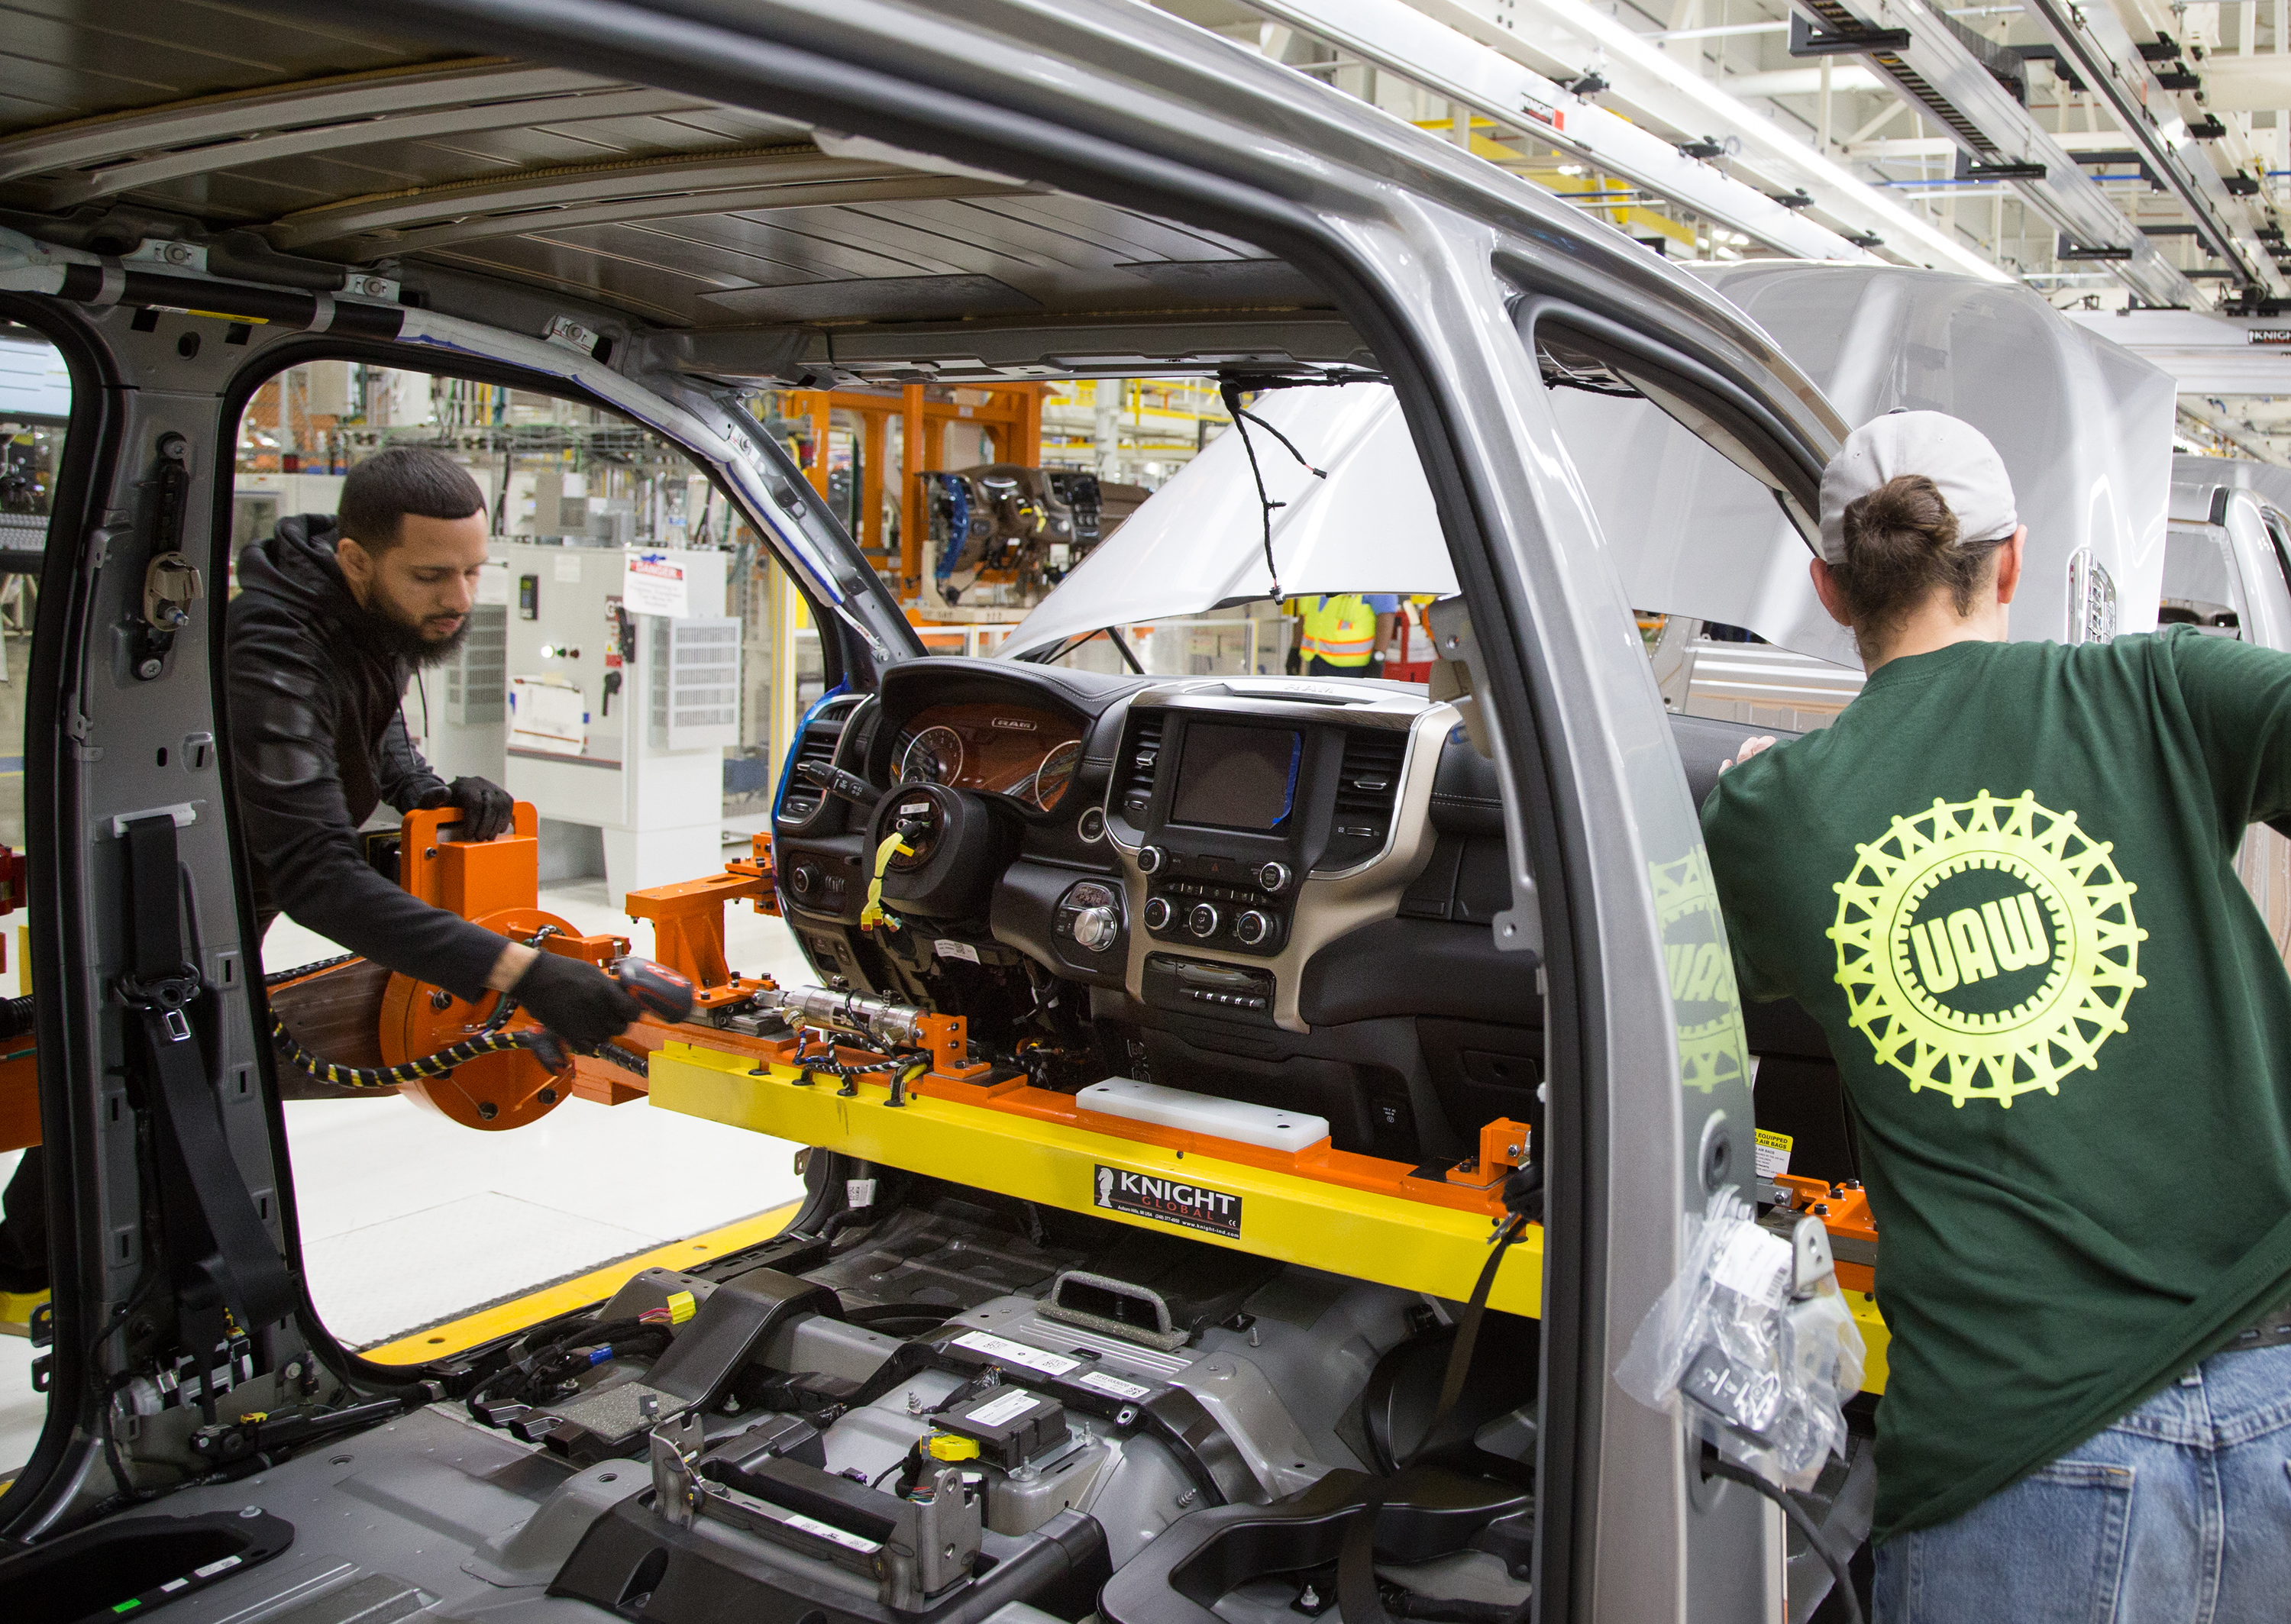 Auto workers OK labor deal at Fiat Chrysler